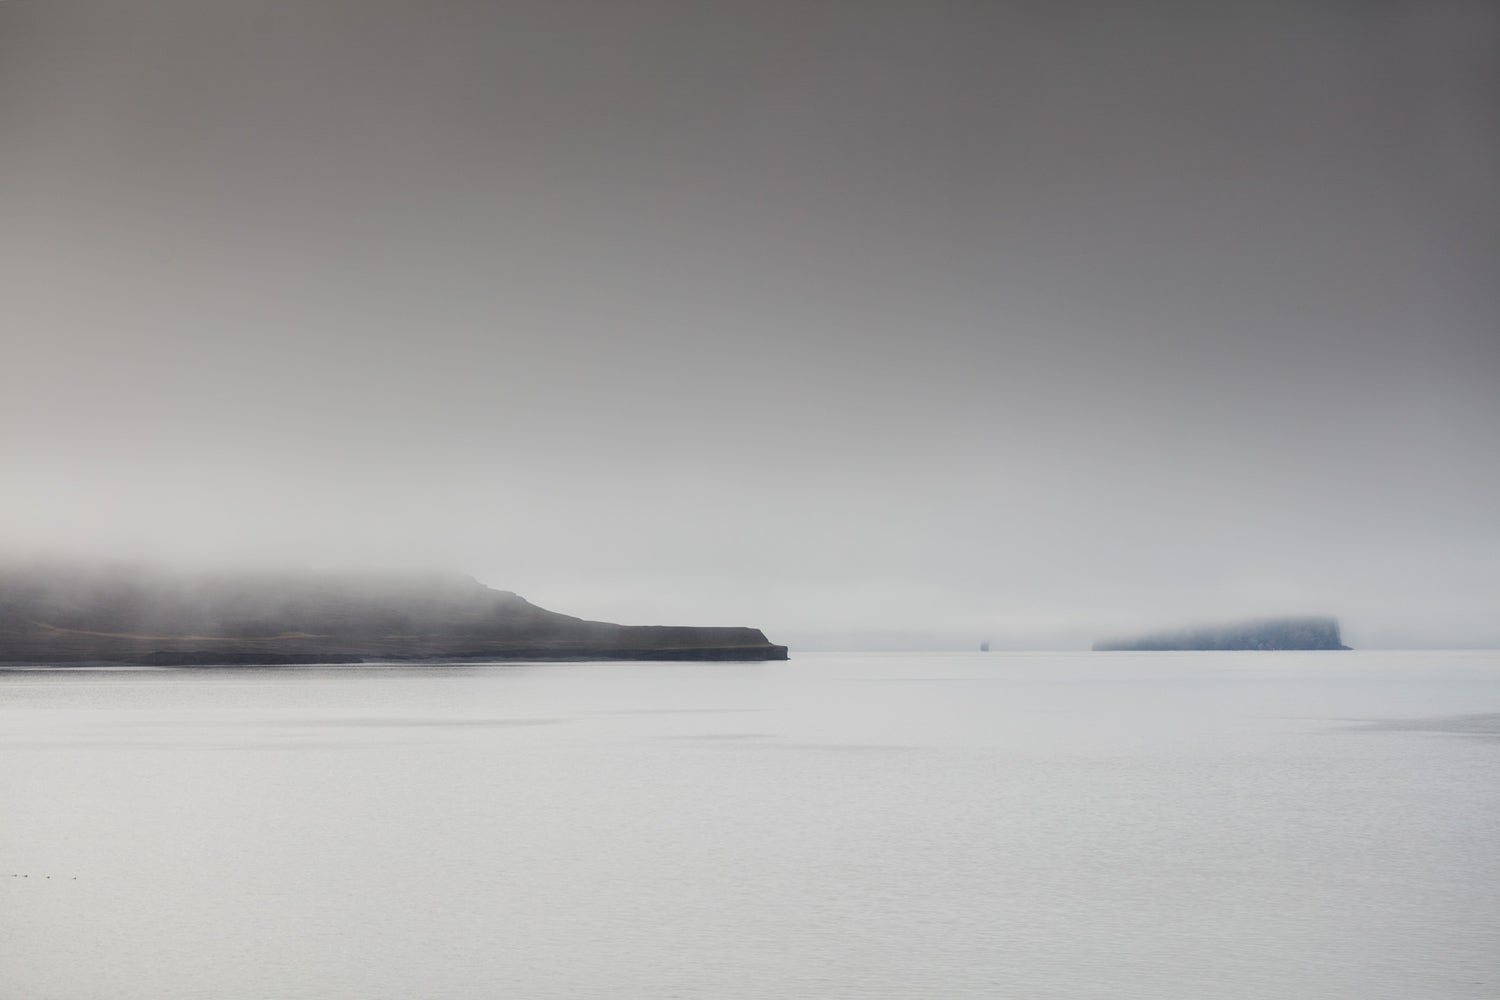 Image of Island in the mist